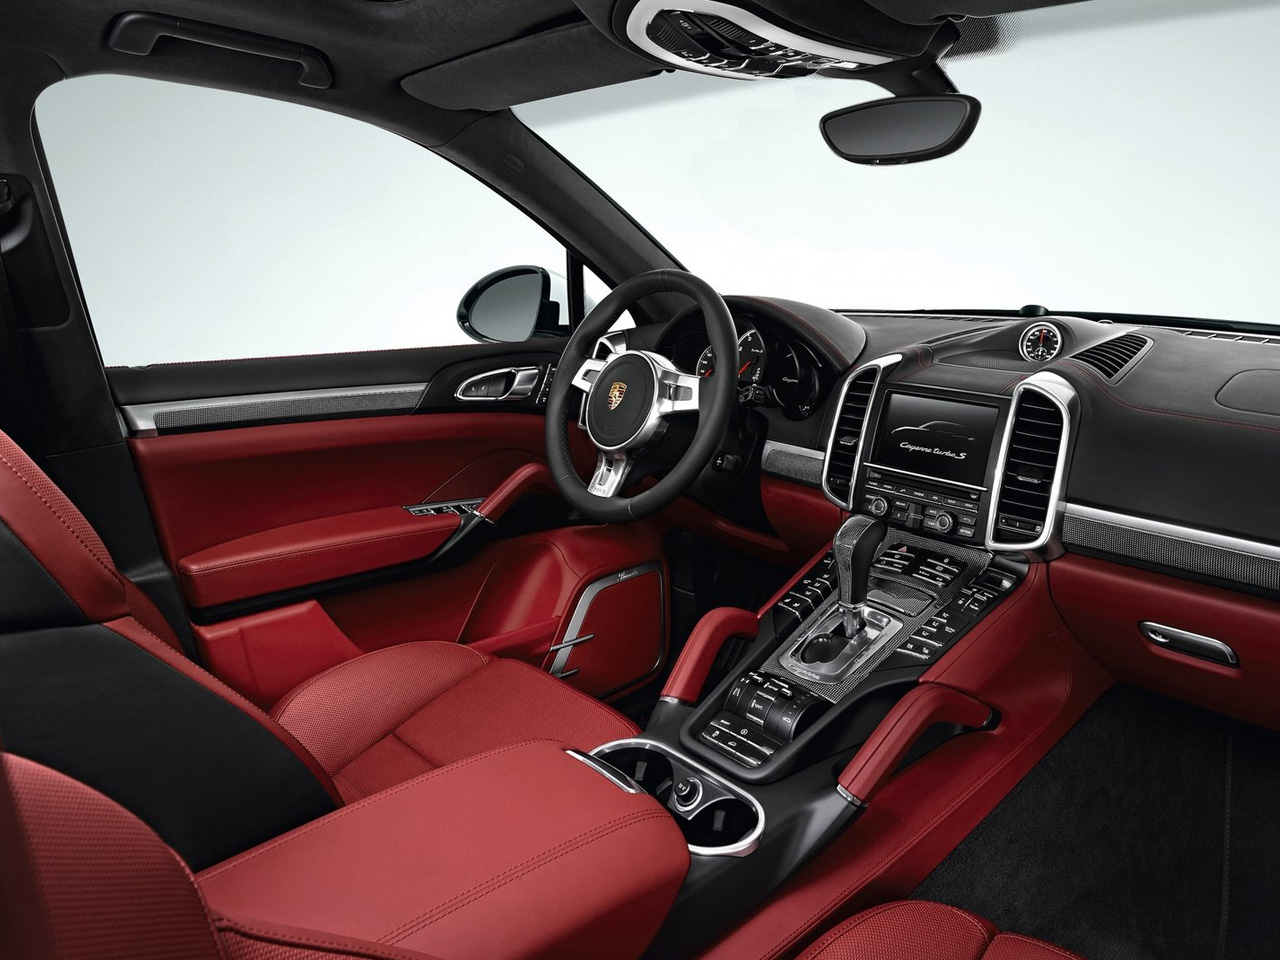 2013 porsche cayenne turbo s cars info. Black Bedroom Furniture Sets. Home Design Ideas